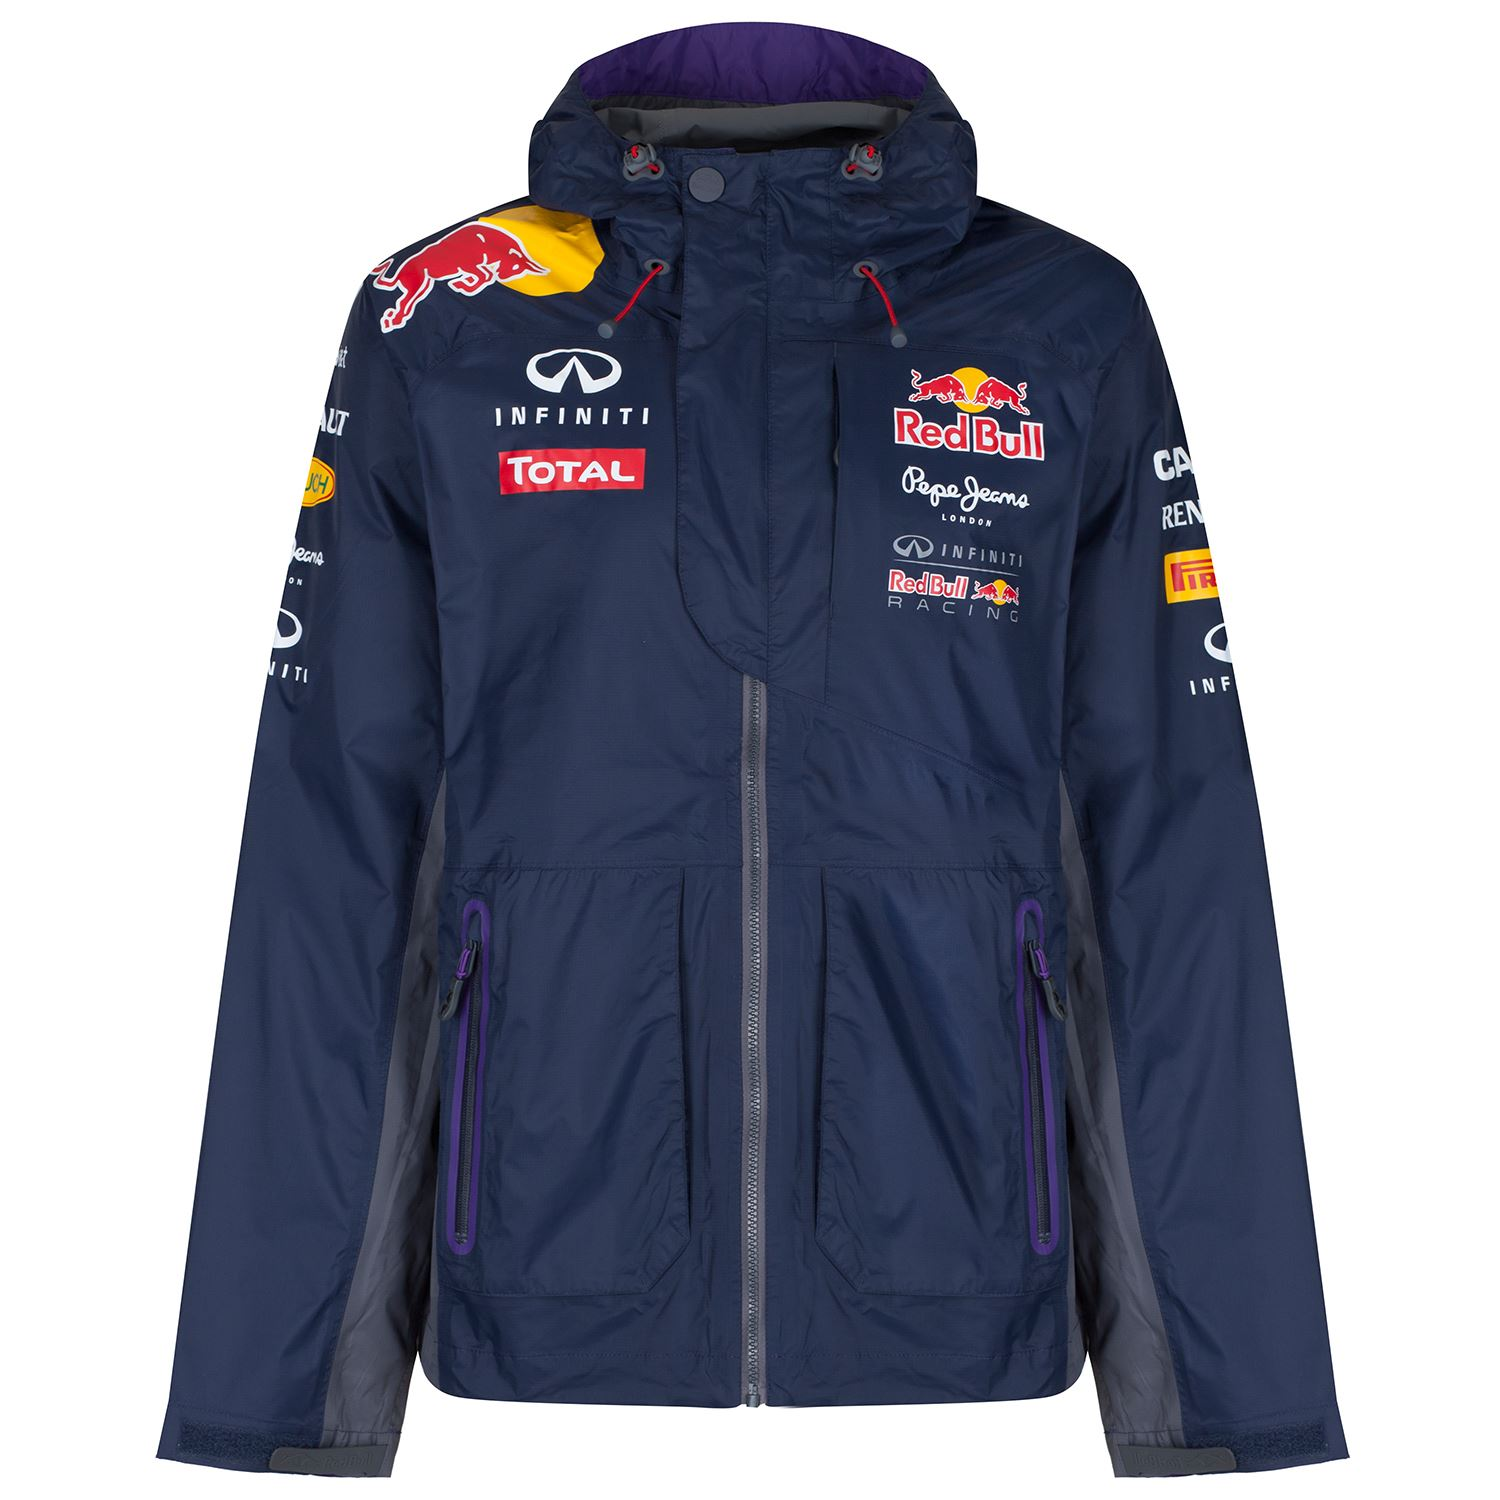 infiniti red bull racing formel 1 regenjacke pepe jeans. Black Bedroom Furniture Sets. Home Design Ideas